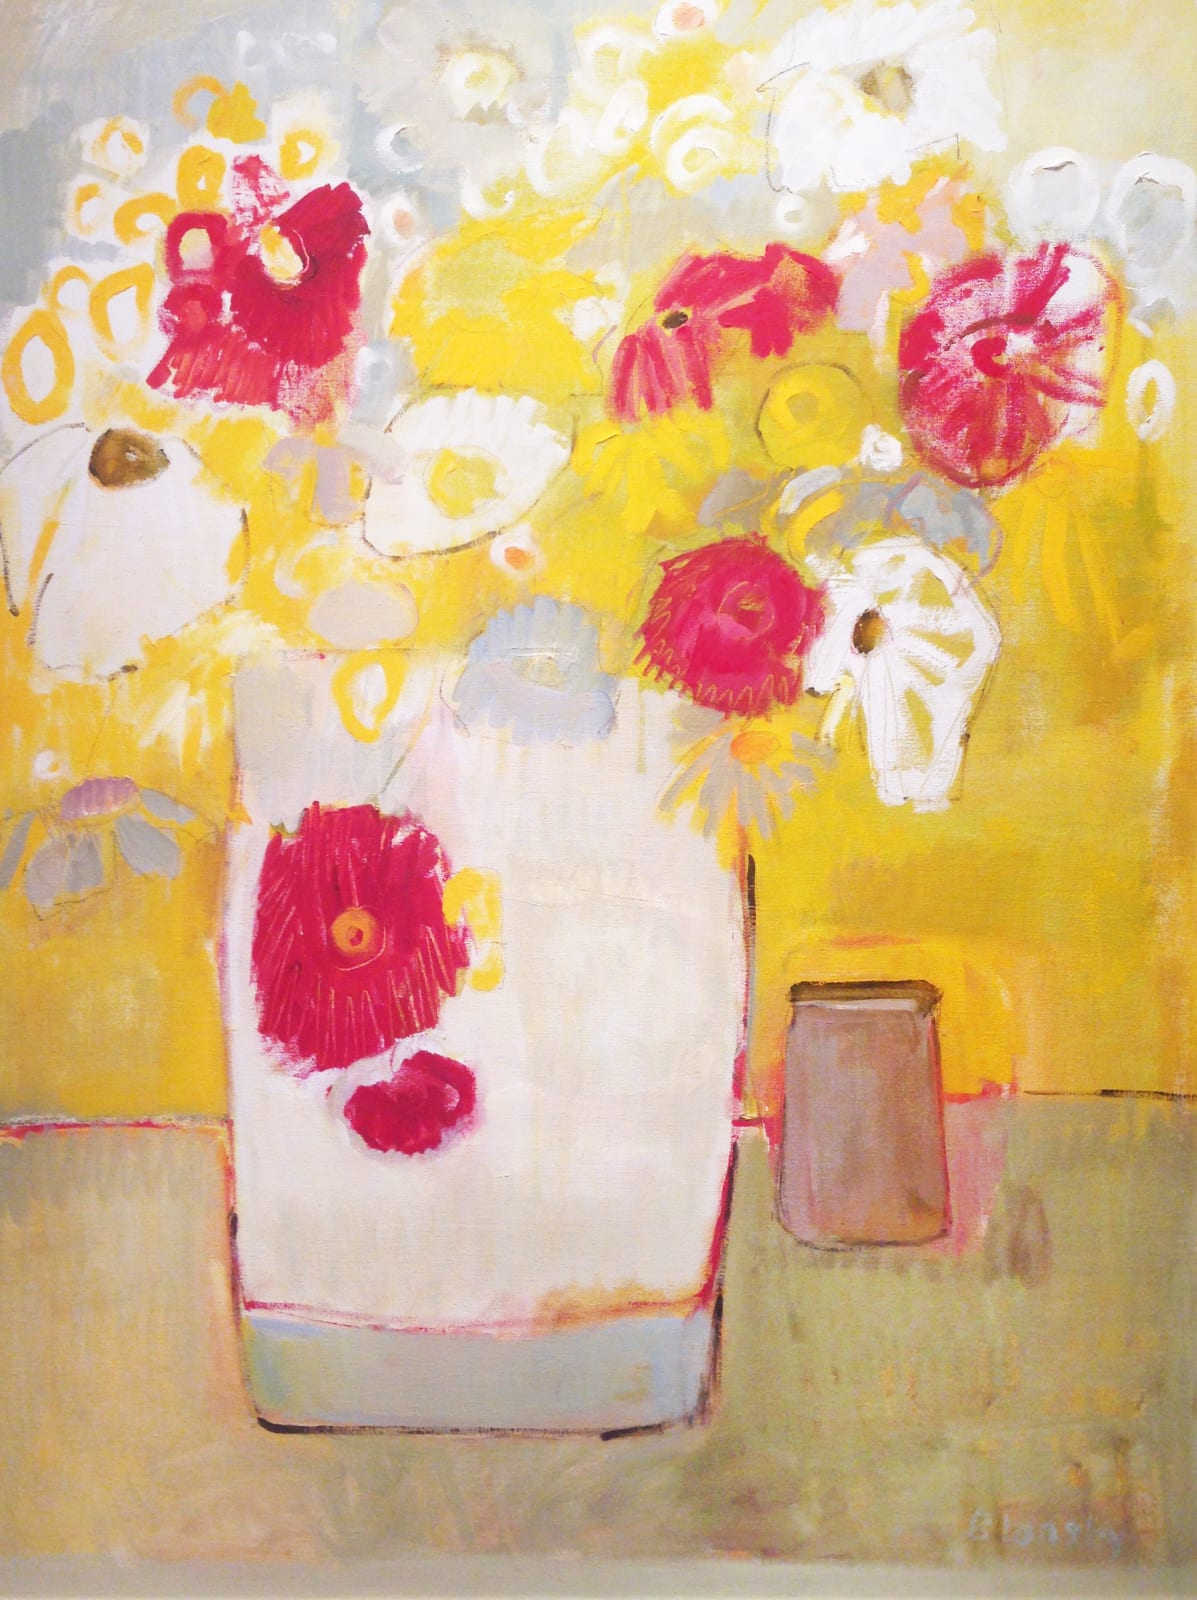 Bridget Lansley The Yellow Room Signed Oil on Canvas 40 x 30 in 101.6 x 76.2 cms